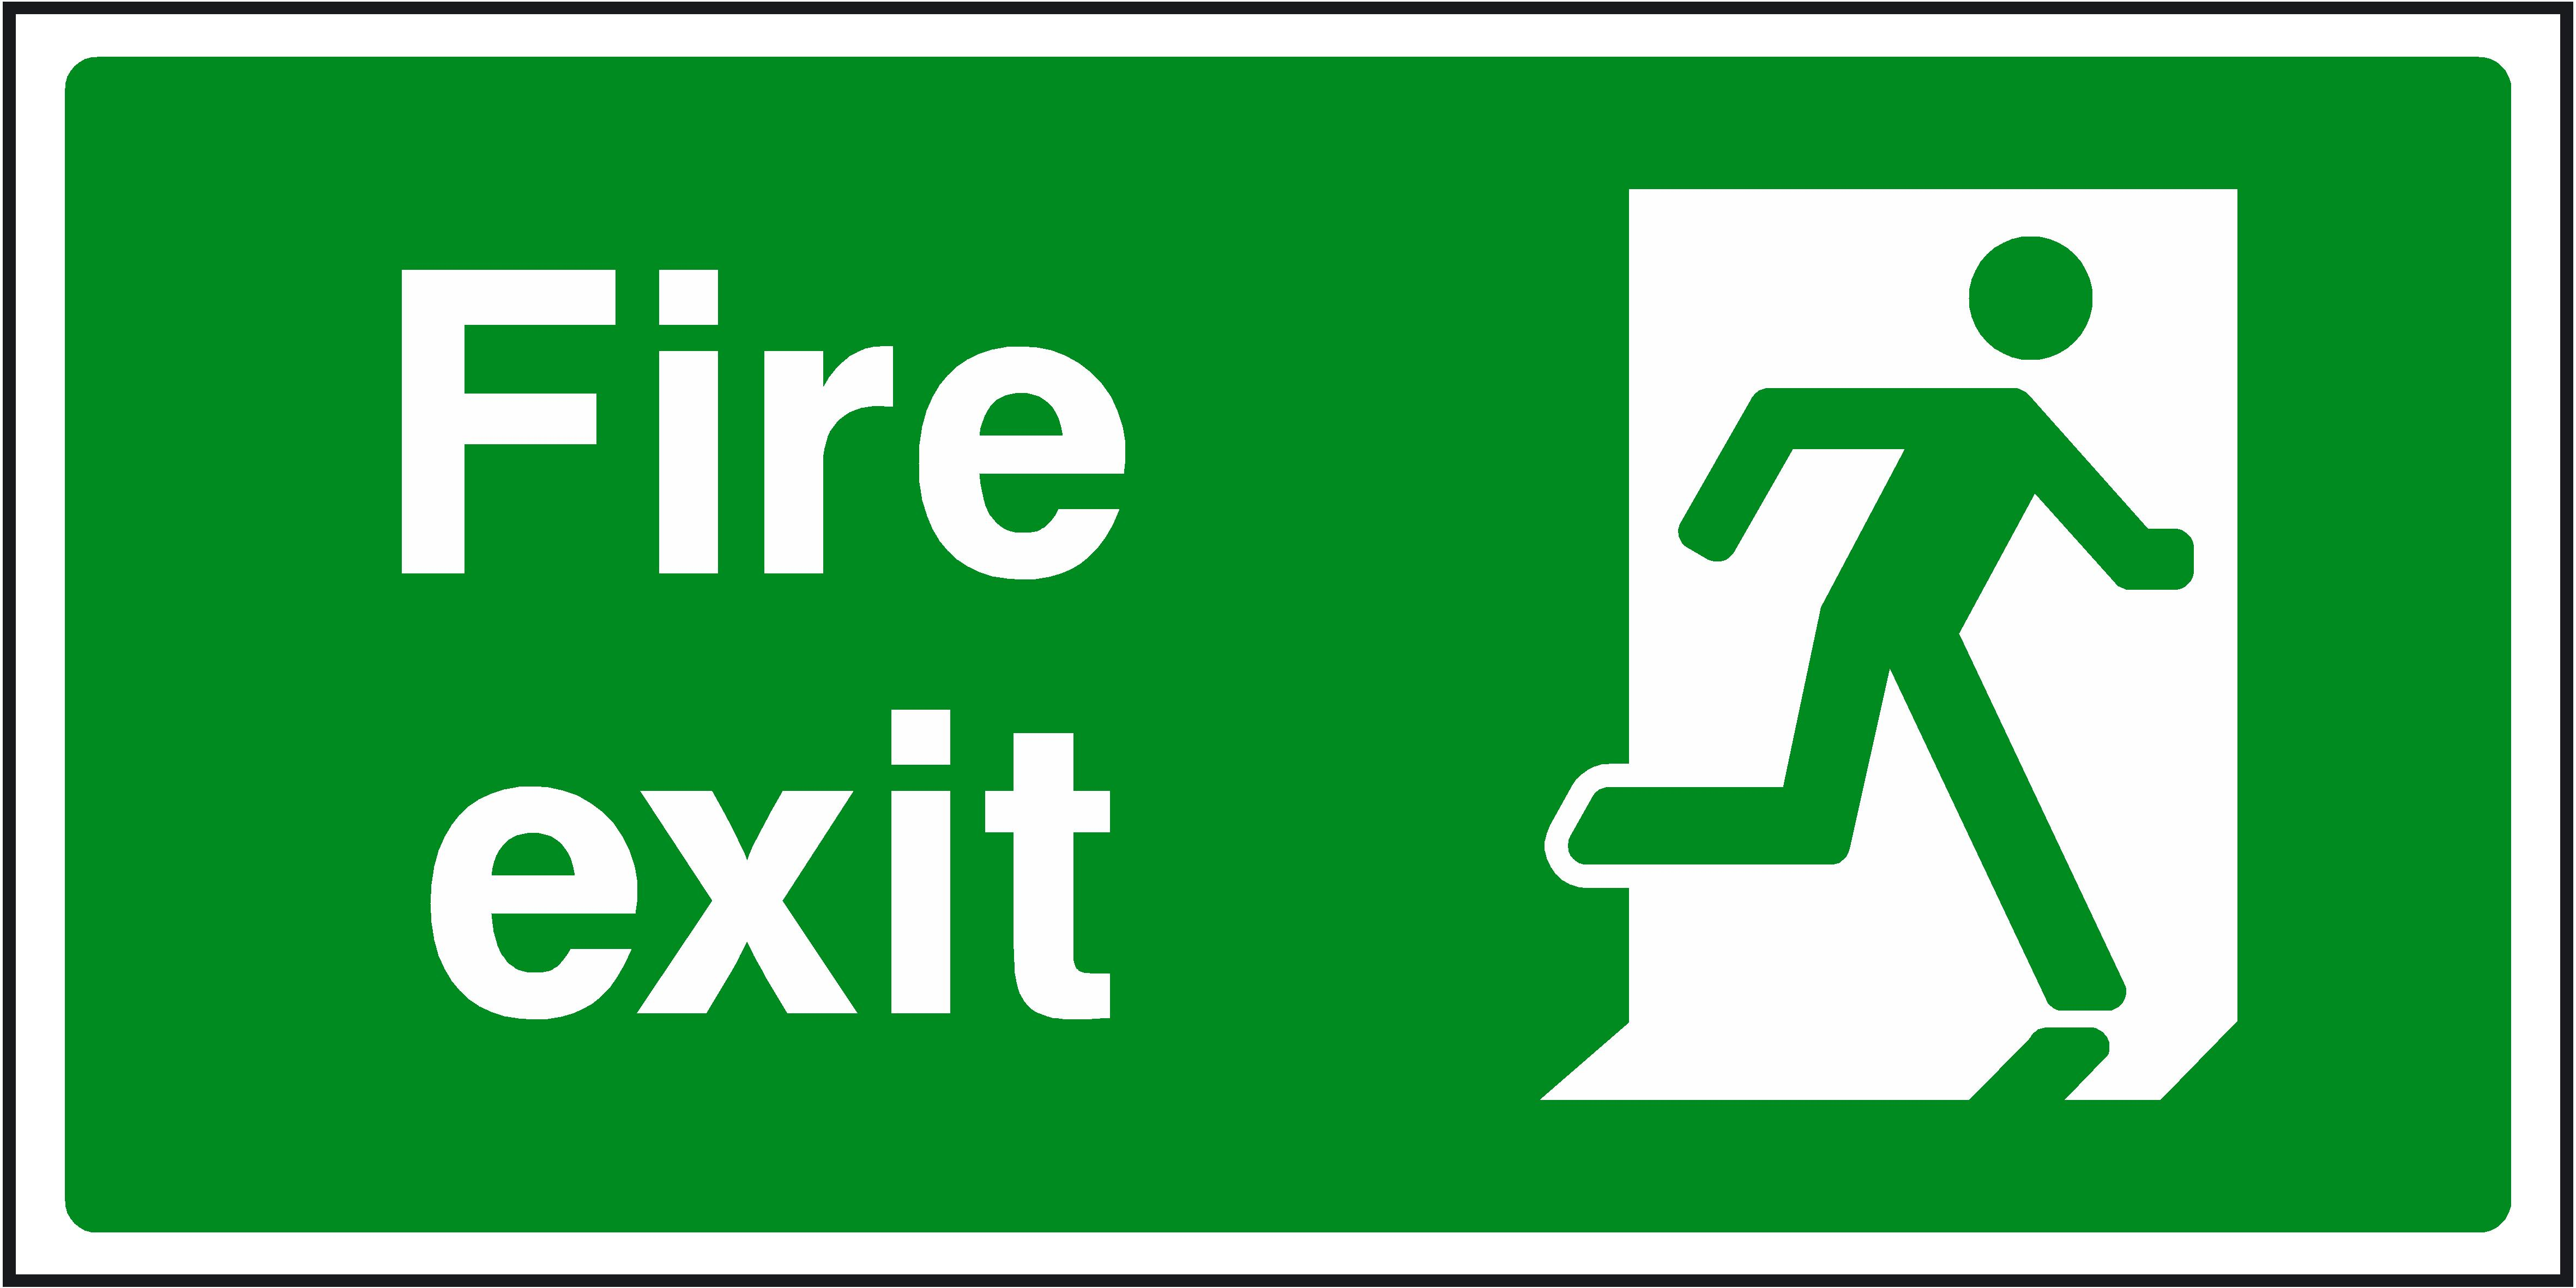 Emergency exit clipart - Clipground